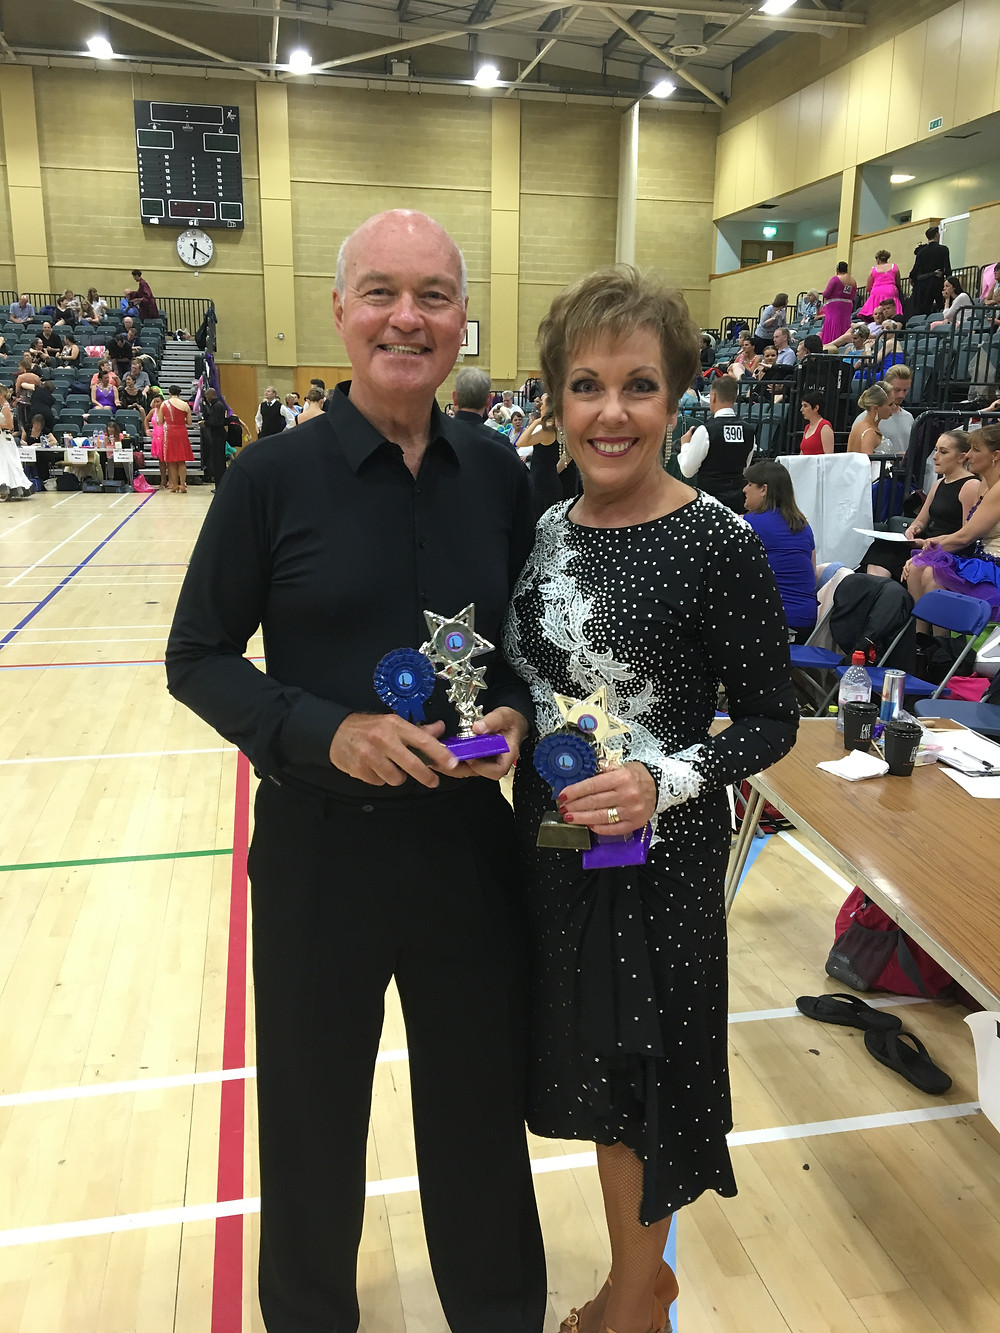 Rod and Jane winning both their couples events.